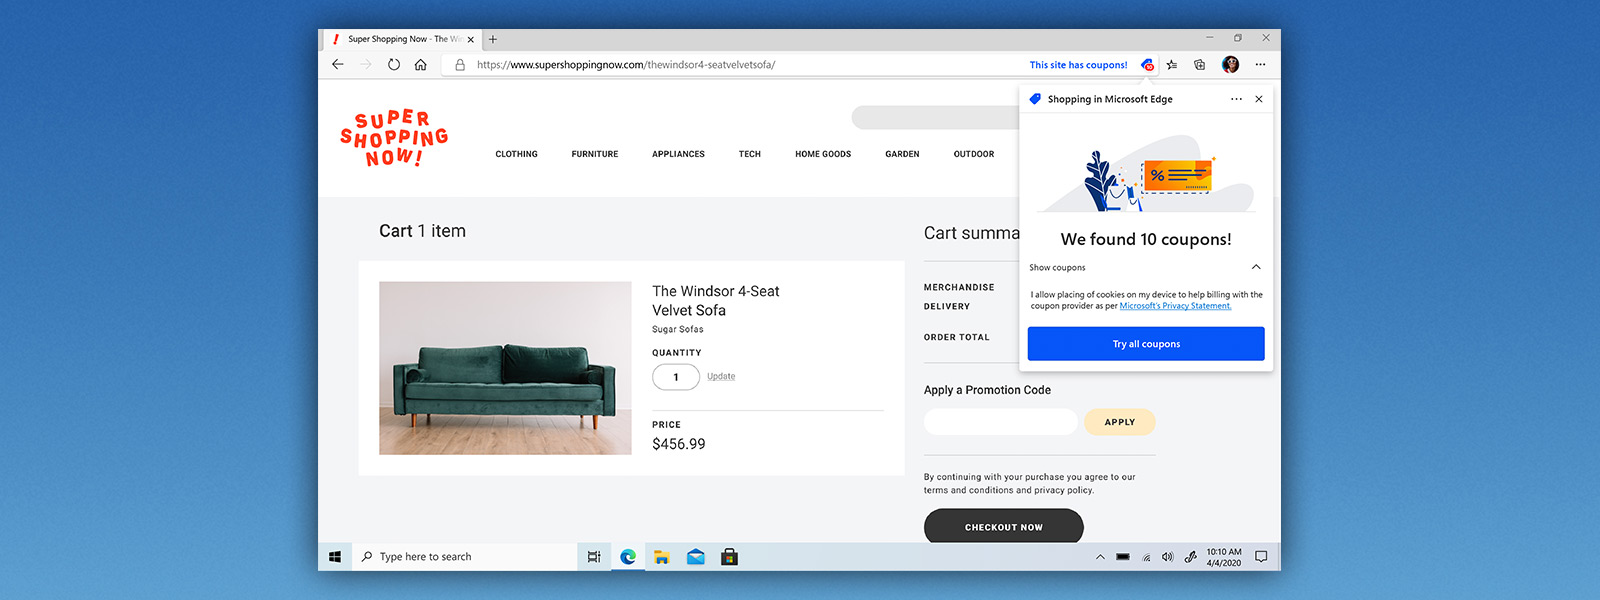 Microsoft Edge browser window showing shopping website with coupon feature